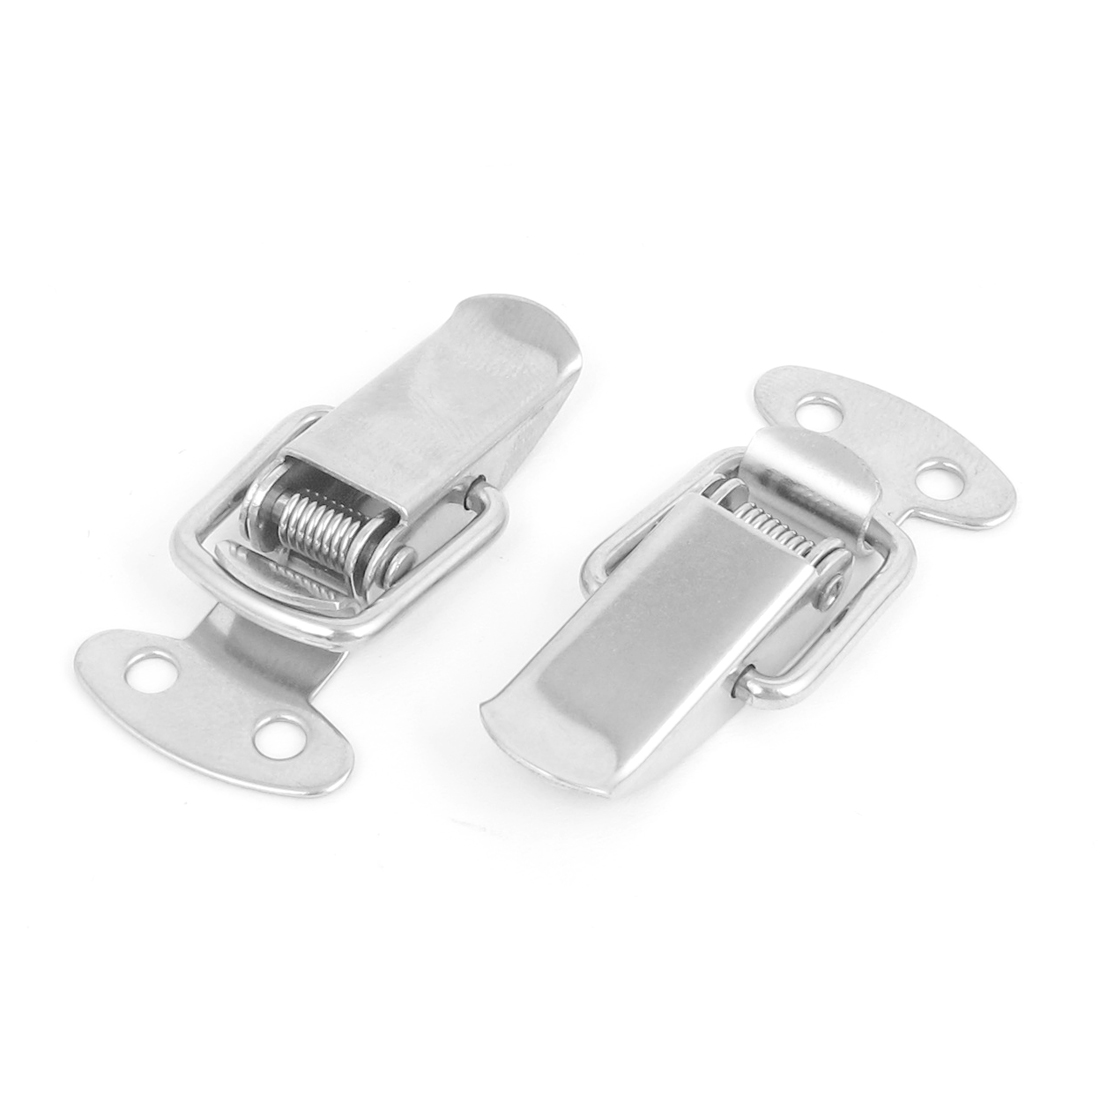 2pcs Metal Spring Loaded Toolbox Drawer Chest Lock Toggle Latch Hasp Hardware Tool